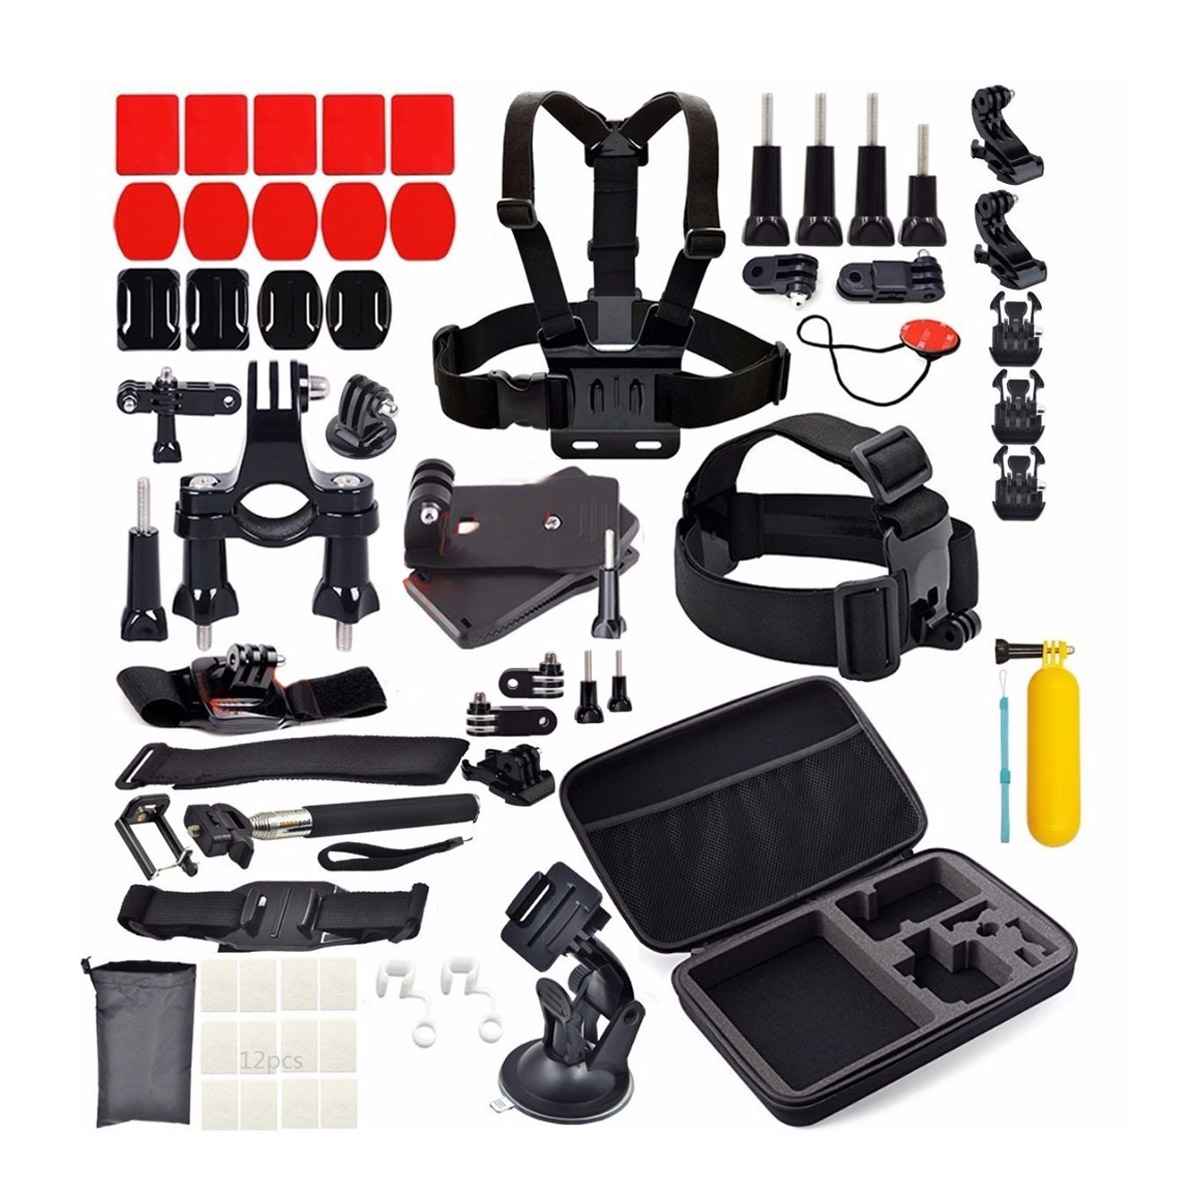 58 in 1 Accessories Set Kit for GoPro Hero 2 3 3+ 4 SJCAM Head Chest Strap Pole